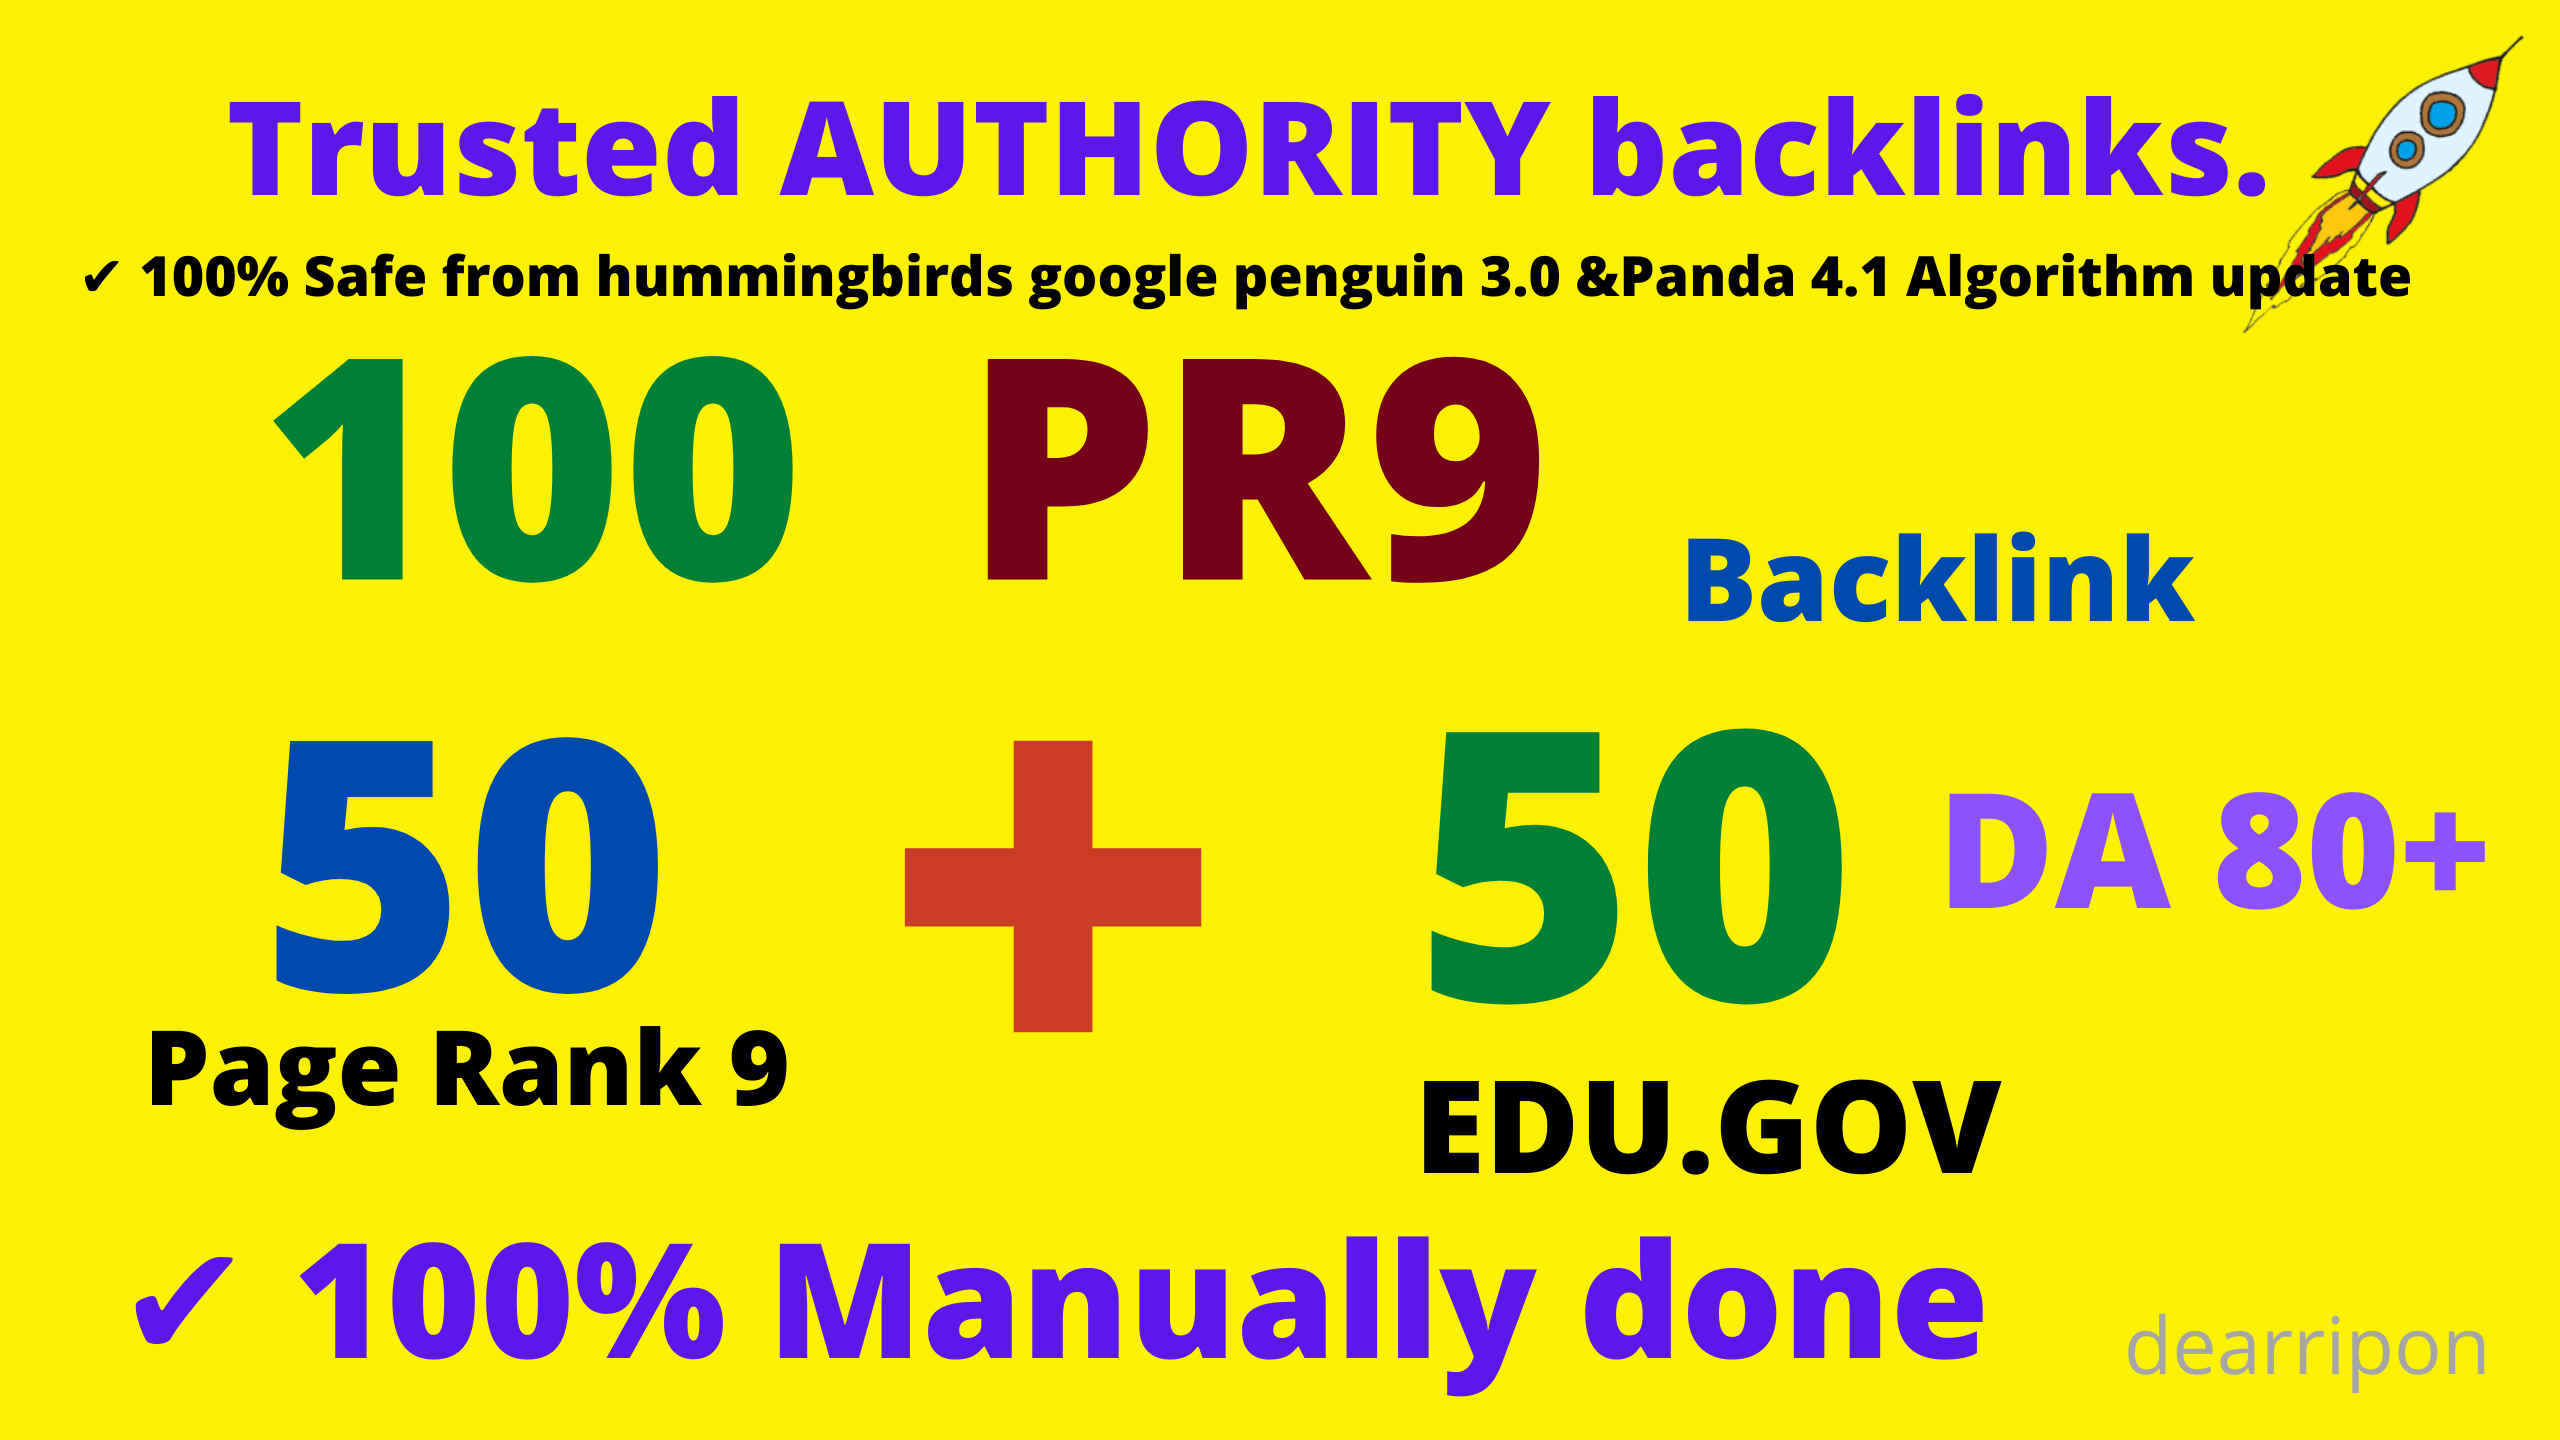 3 buy 2 free-CREATE WEB2.O DA80+100 Backlinks 50 PR9+50 EDU High Quality SEO Permanent Links